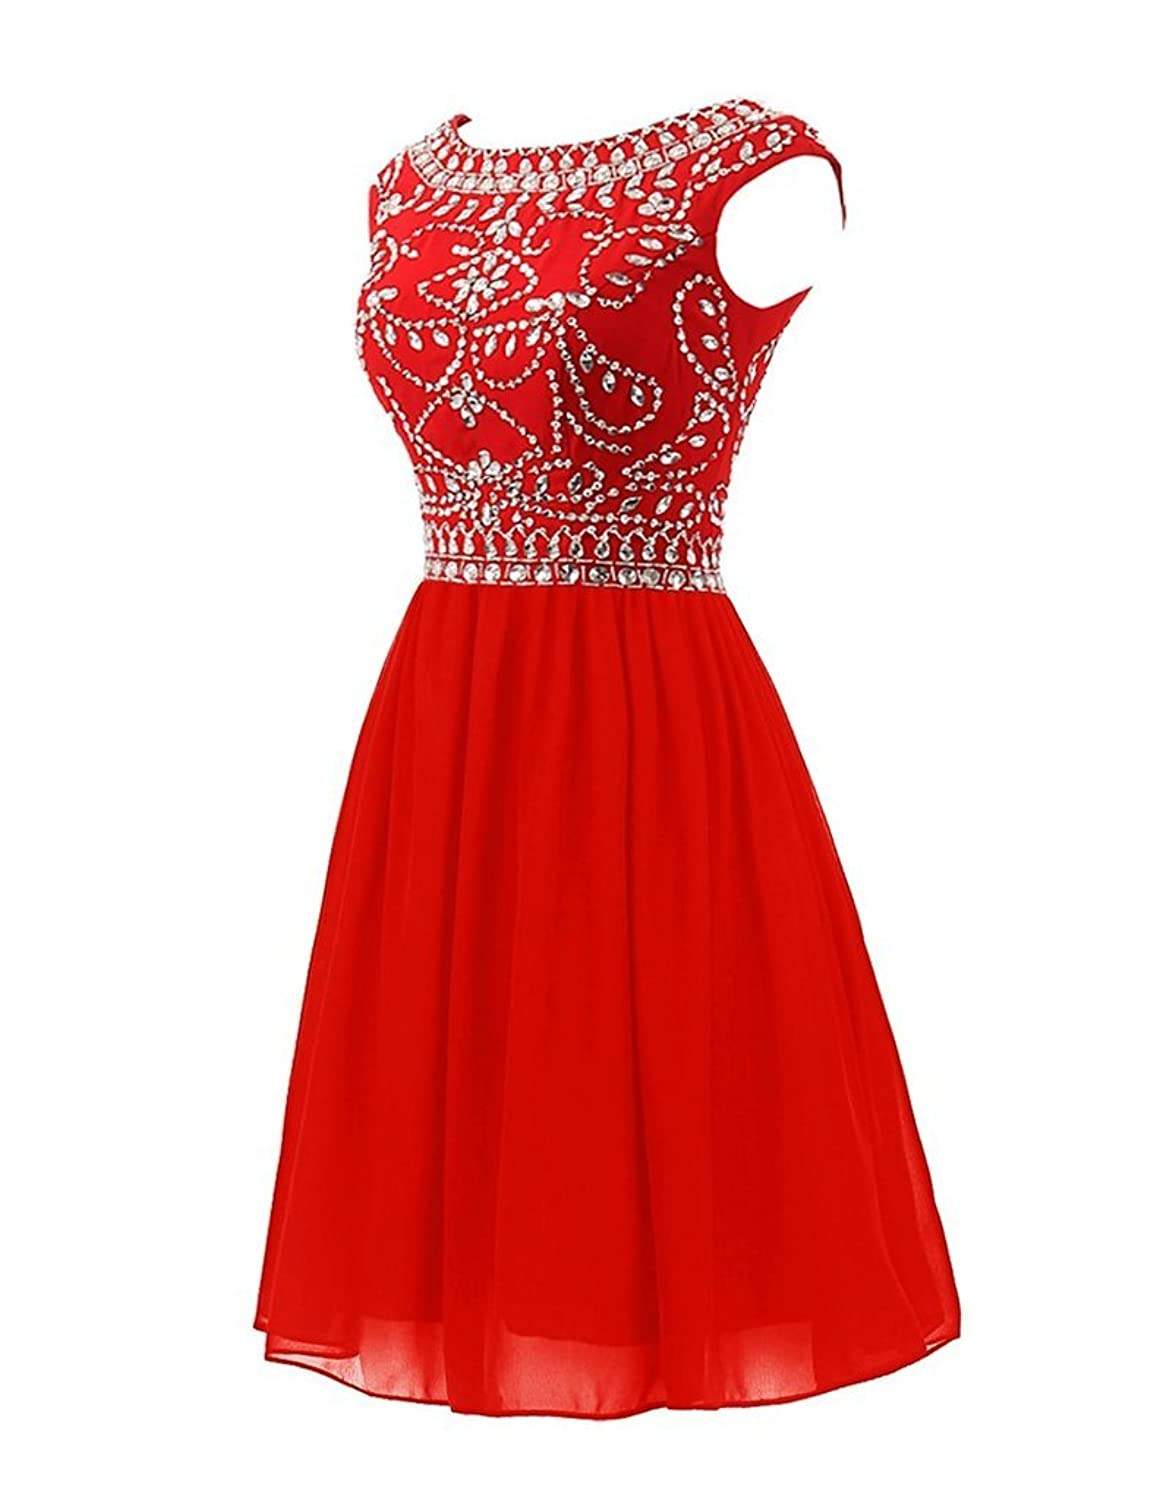 CLOCOLOR Women's Short Chiffon Beaded Rhinestones Cap Sleeve Cocktail Dresses Homecoming Dress